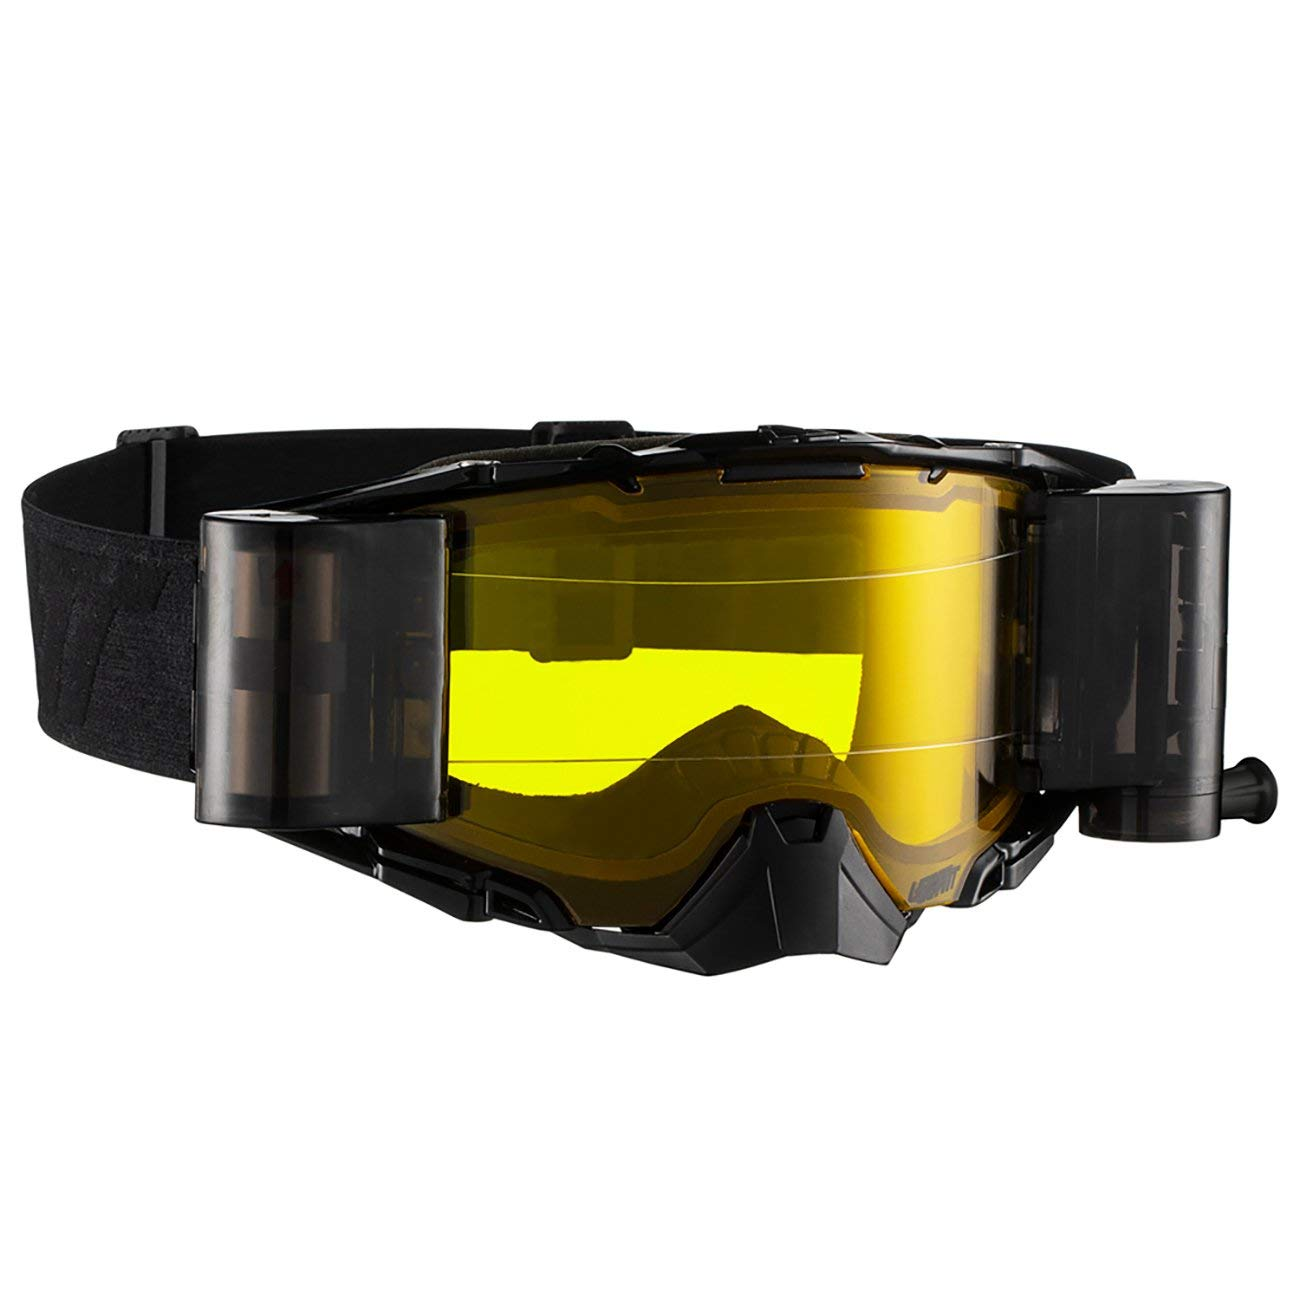 Leatt Velocity 6.5 Roll-Off Adult Off-Road Motorcycle Goggles - Black/Grey Yellow/One Size